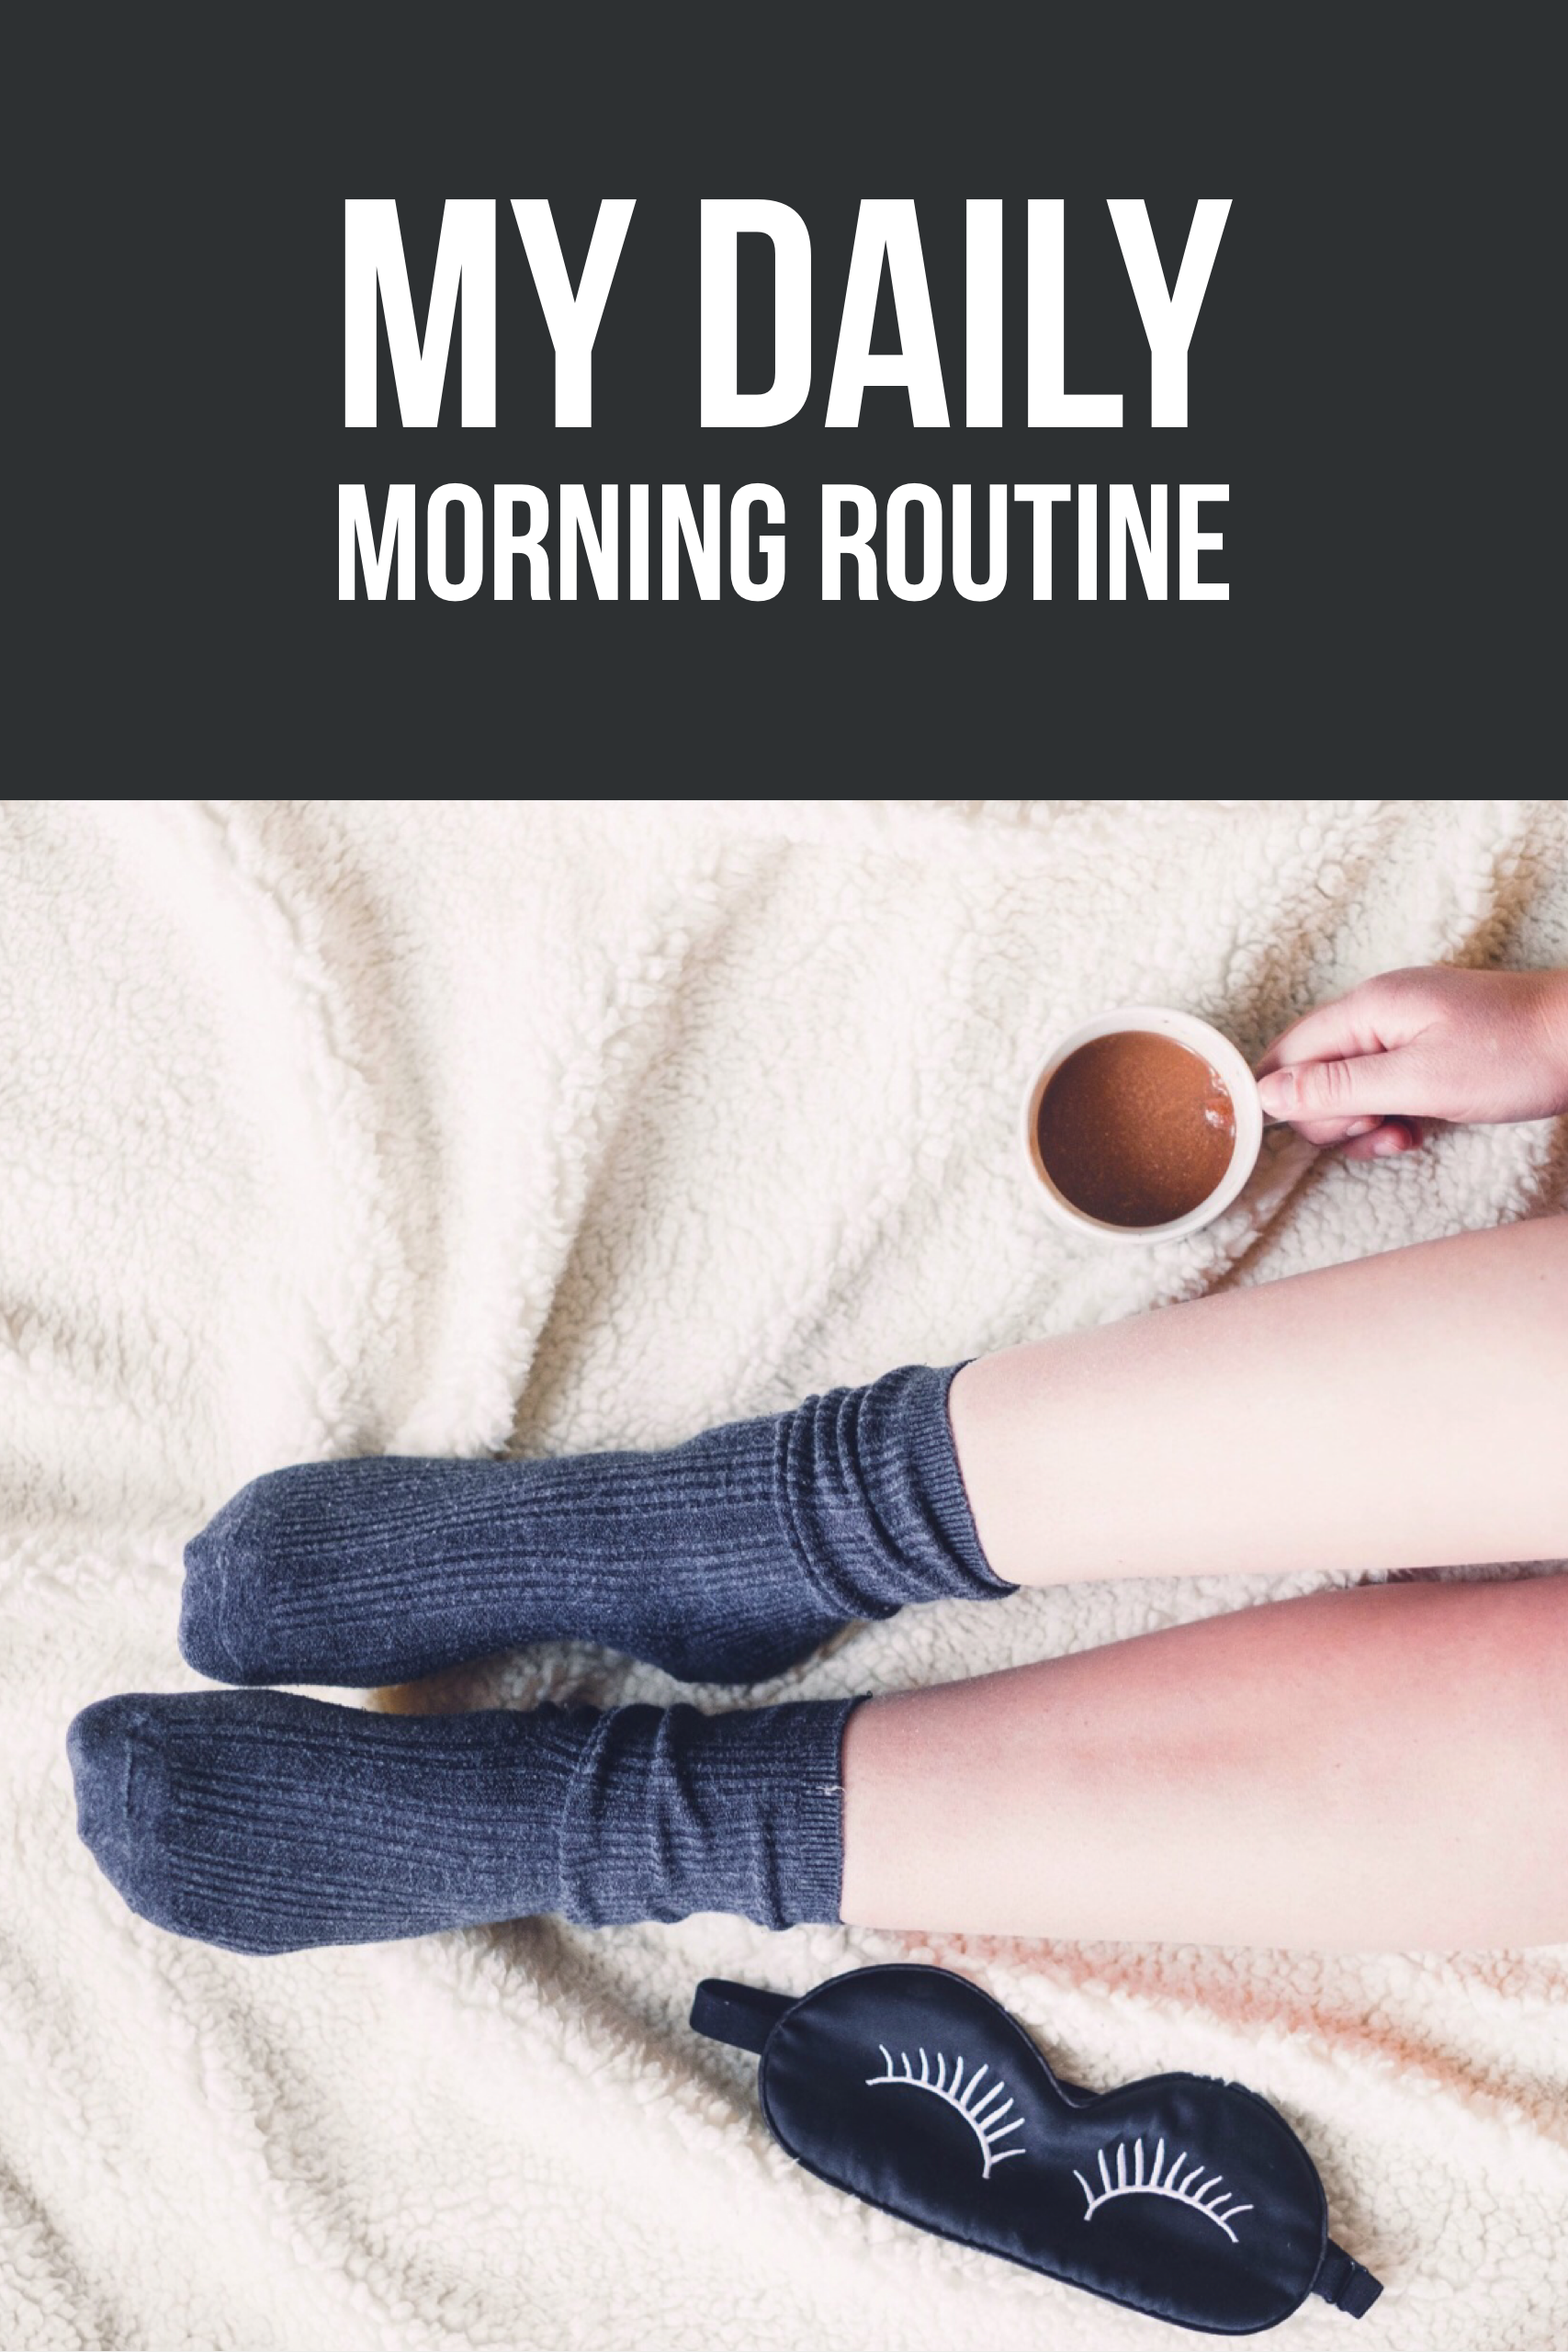 This is my daily morning routine every day before work. It is filled with tips on how easy it is to get out of bed and motivate yourself. I read that all successful people have a morning routine and I want to do the same. I don't go to the gym but I do get plenty of sleep and feel fulfilled each day.